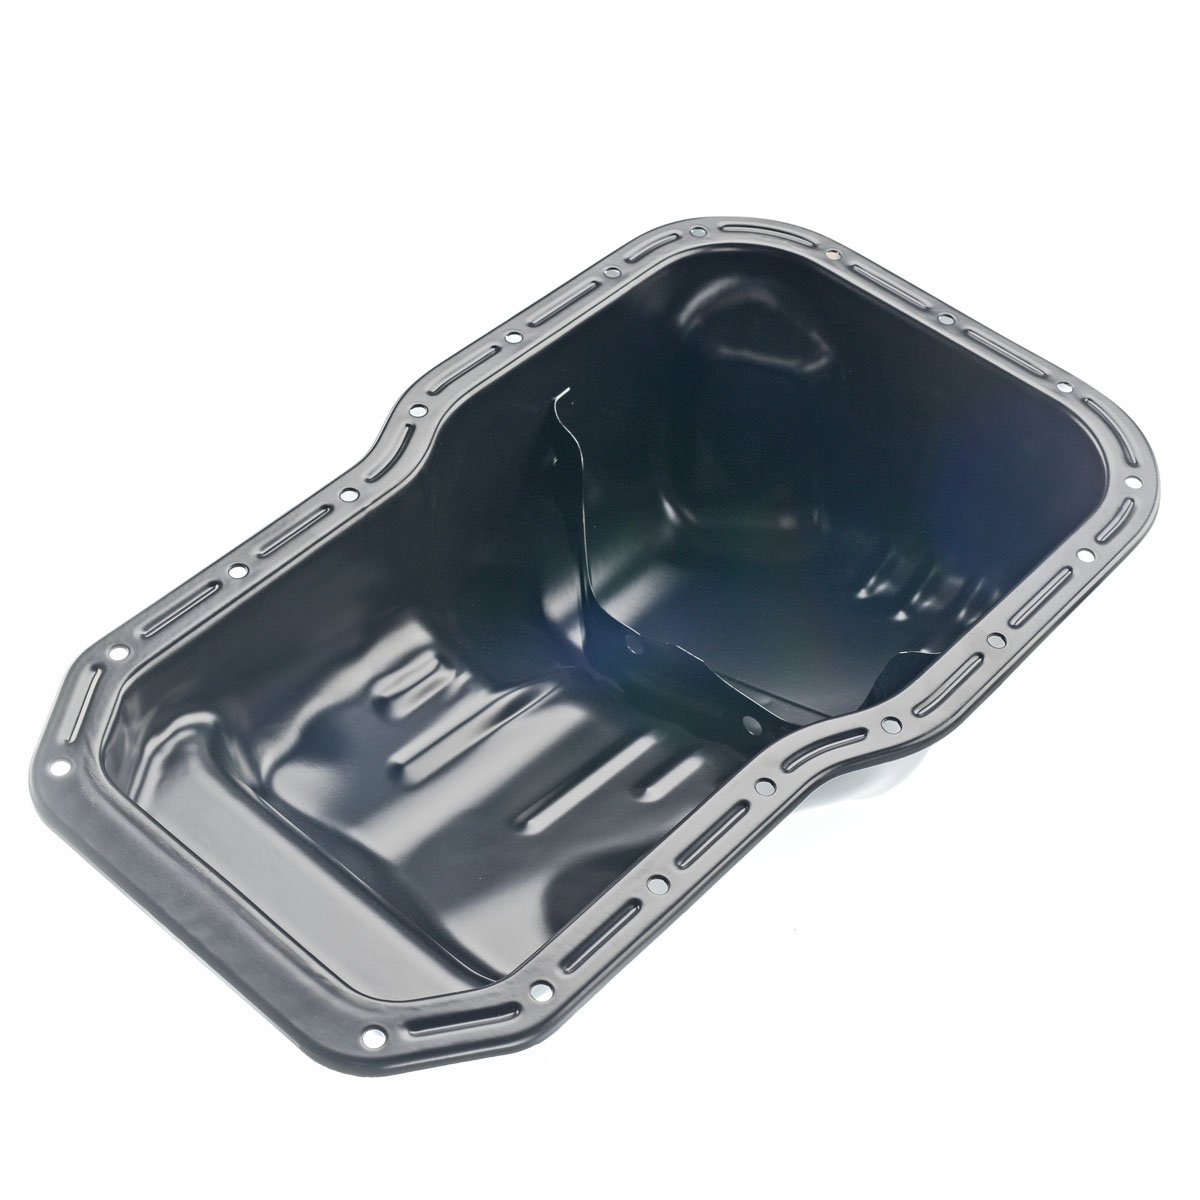 Engine Oil Pan for Toyota Solara 1999-2001 Camry 1992-2001 l4 2.2L